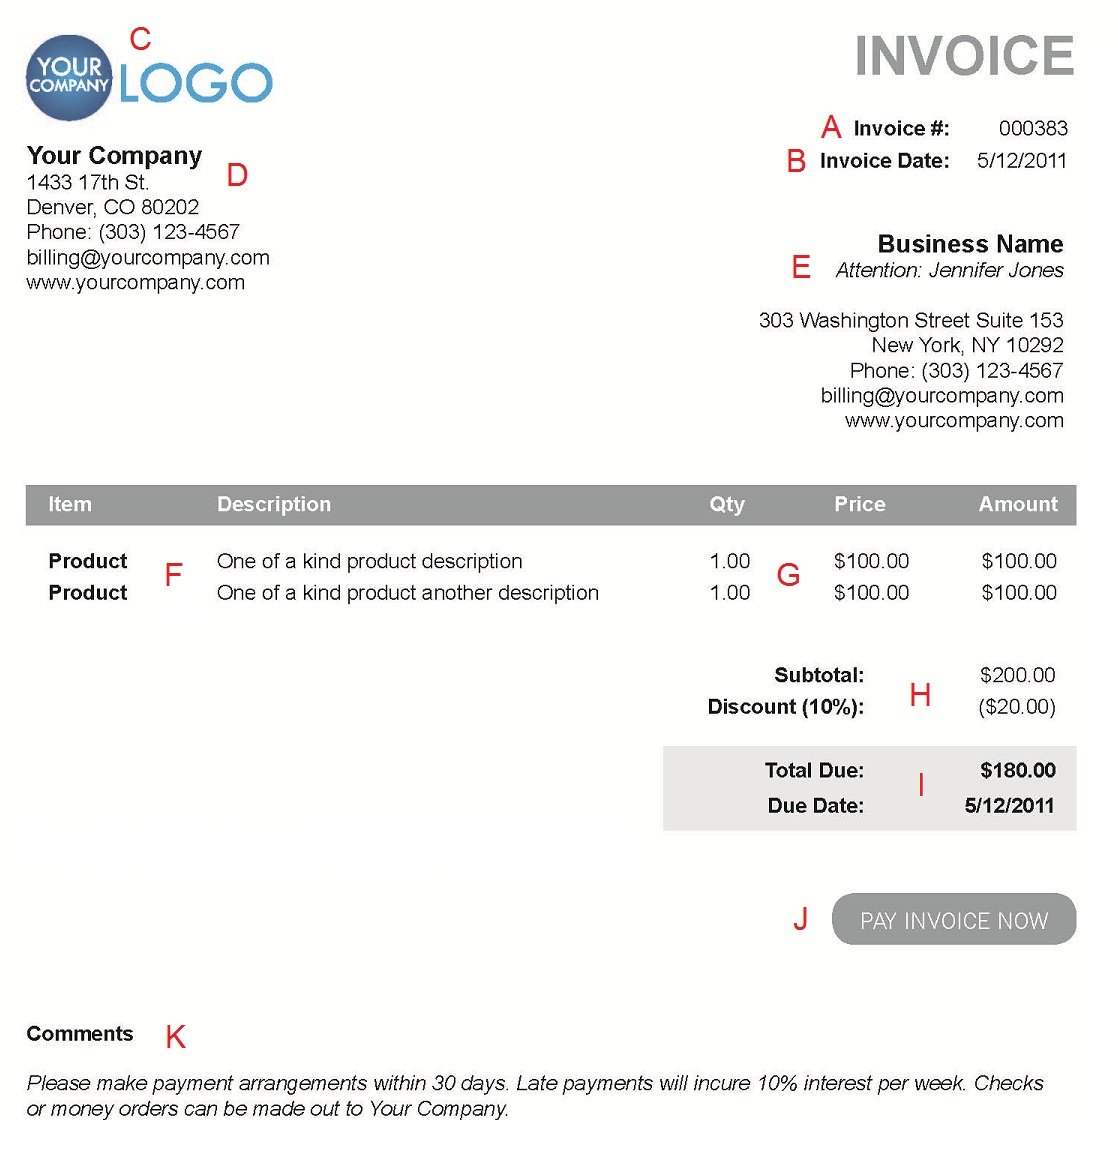 Laceychabertus  Pleasing The  Different Sections Of An Electronic Payment Invoice With Marvelous A  With Archaic Quote Invoice Template Also Make Invoice Template In Addition Sprint Invoice And Dummy Invoice Template As Well As What Is The Difference Between Msrp And Invoice Price Additionally Invoice In Accounting From Paysimplecom With Laceychabertus  Marvelous The  Different Sections Of An Electronic Payment Invoice With Archaic A  And Pleasing Quote Invoice Template Also Make Invoice Template In Addition Sprint Invoice From Paysimplecom